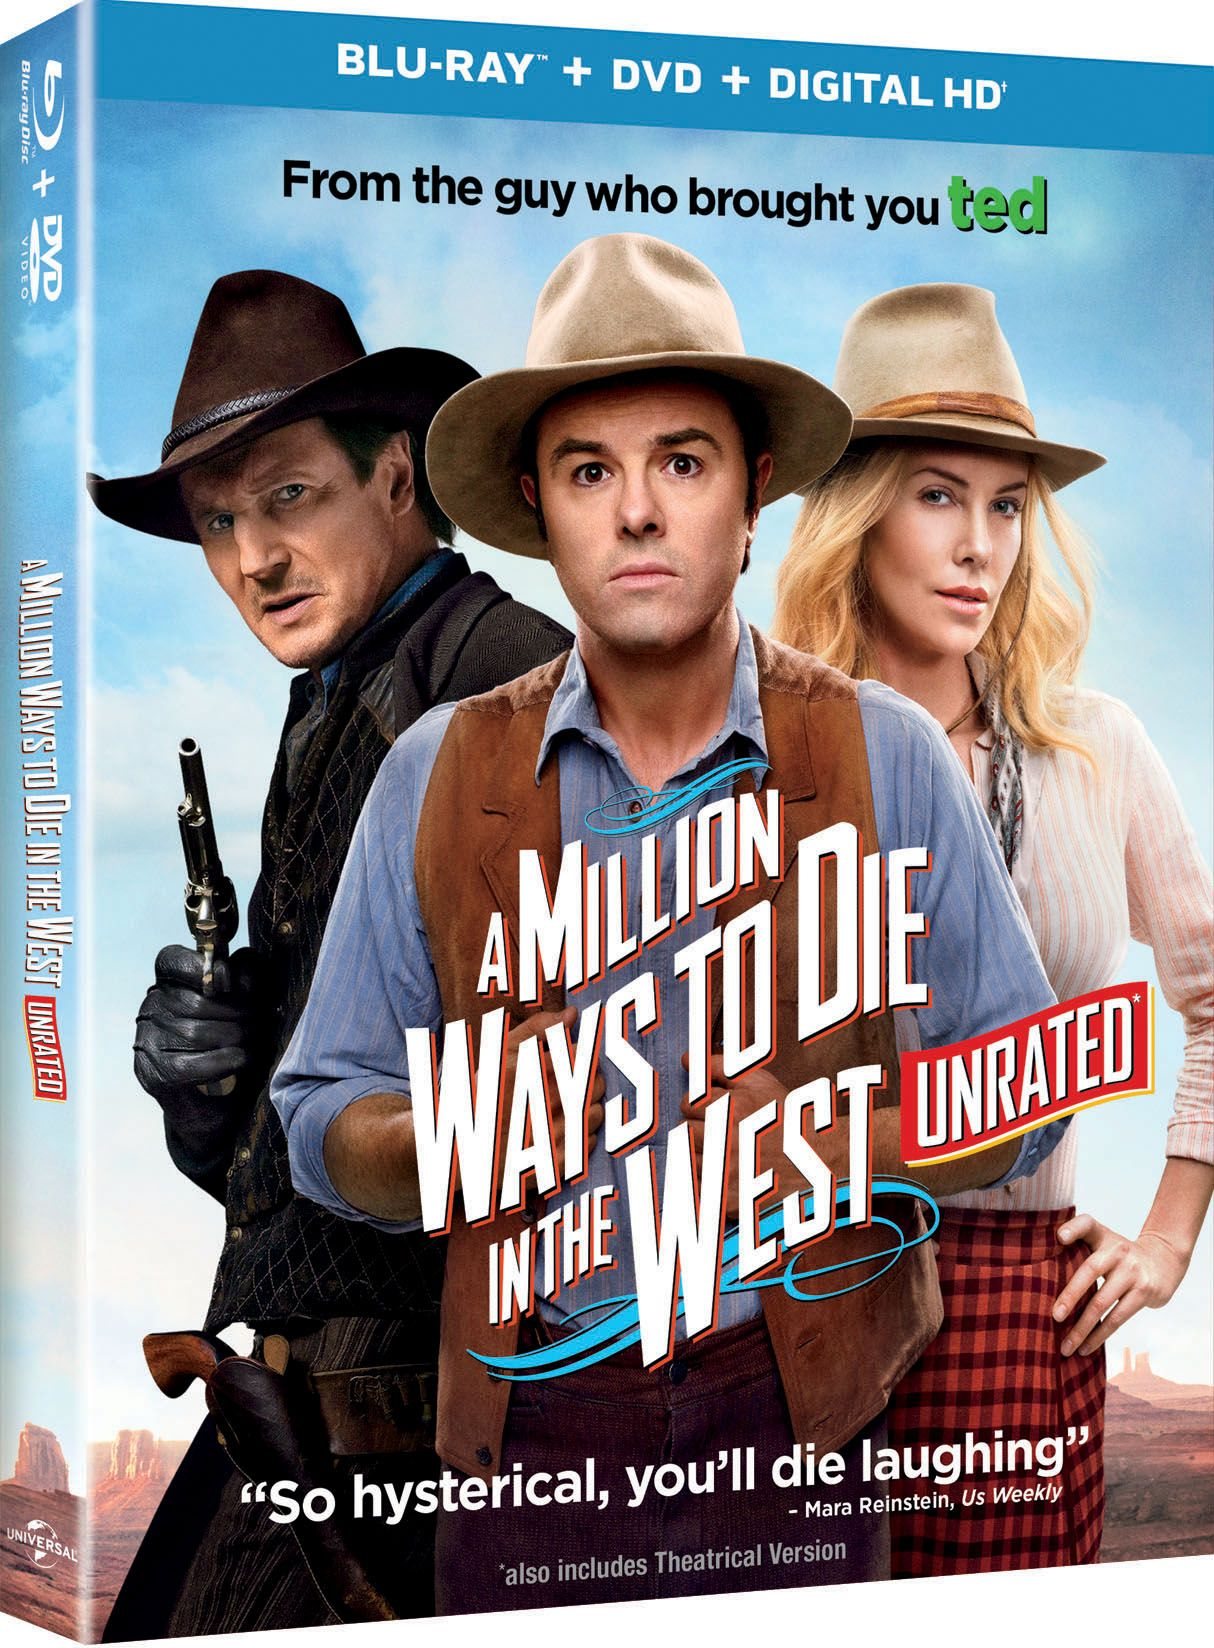 Here are the details on the A Million Ways to Die in the West Unrated ...